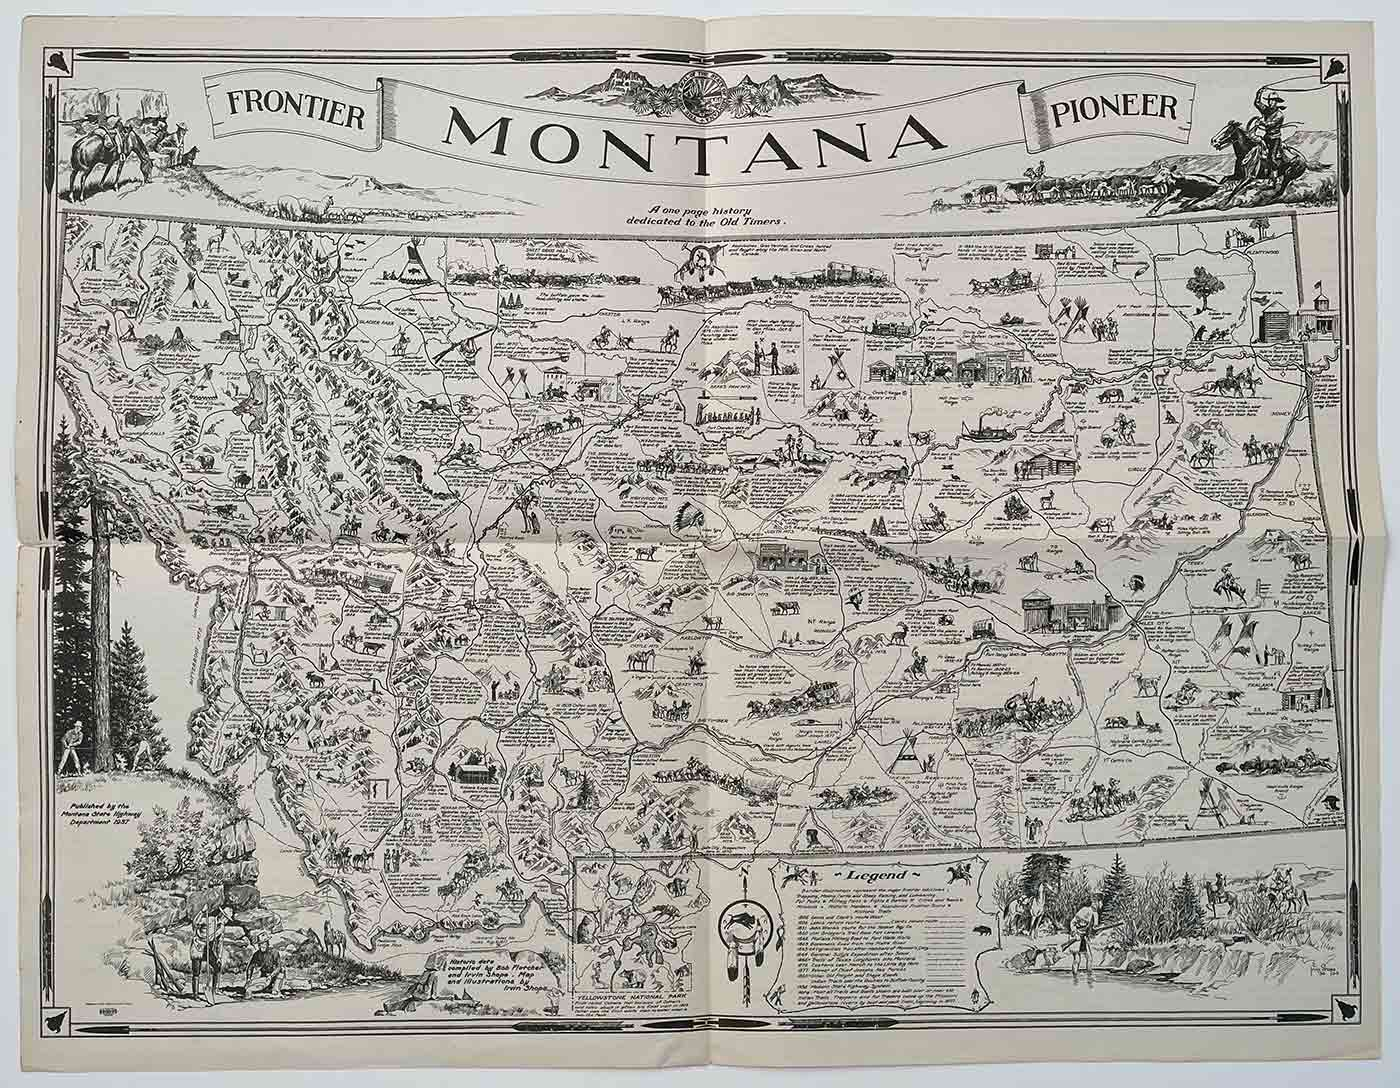 A Map of Montana Whereon is Depicted and Inscribed the Pioneer ...